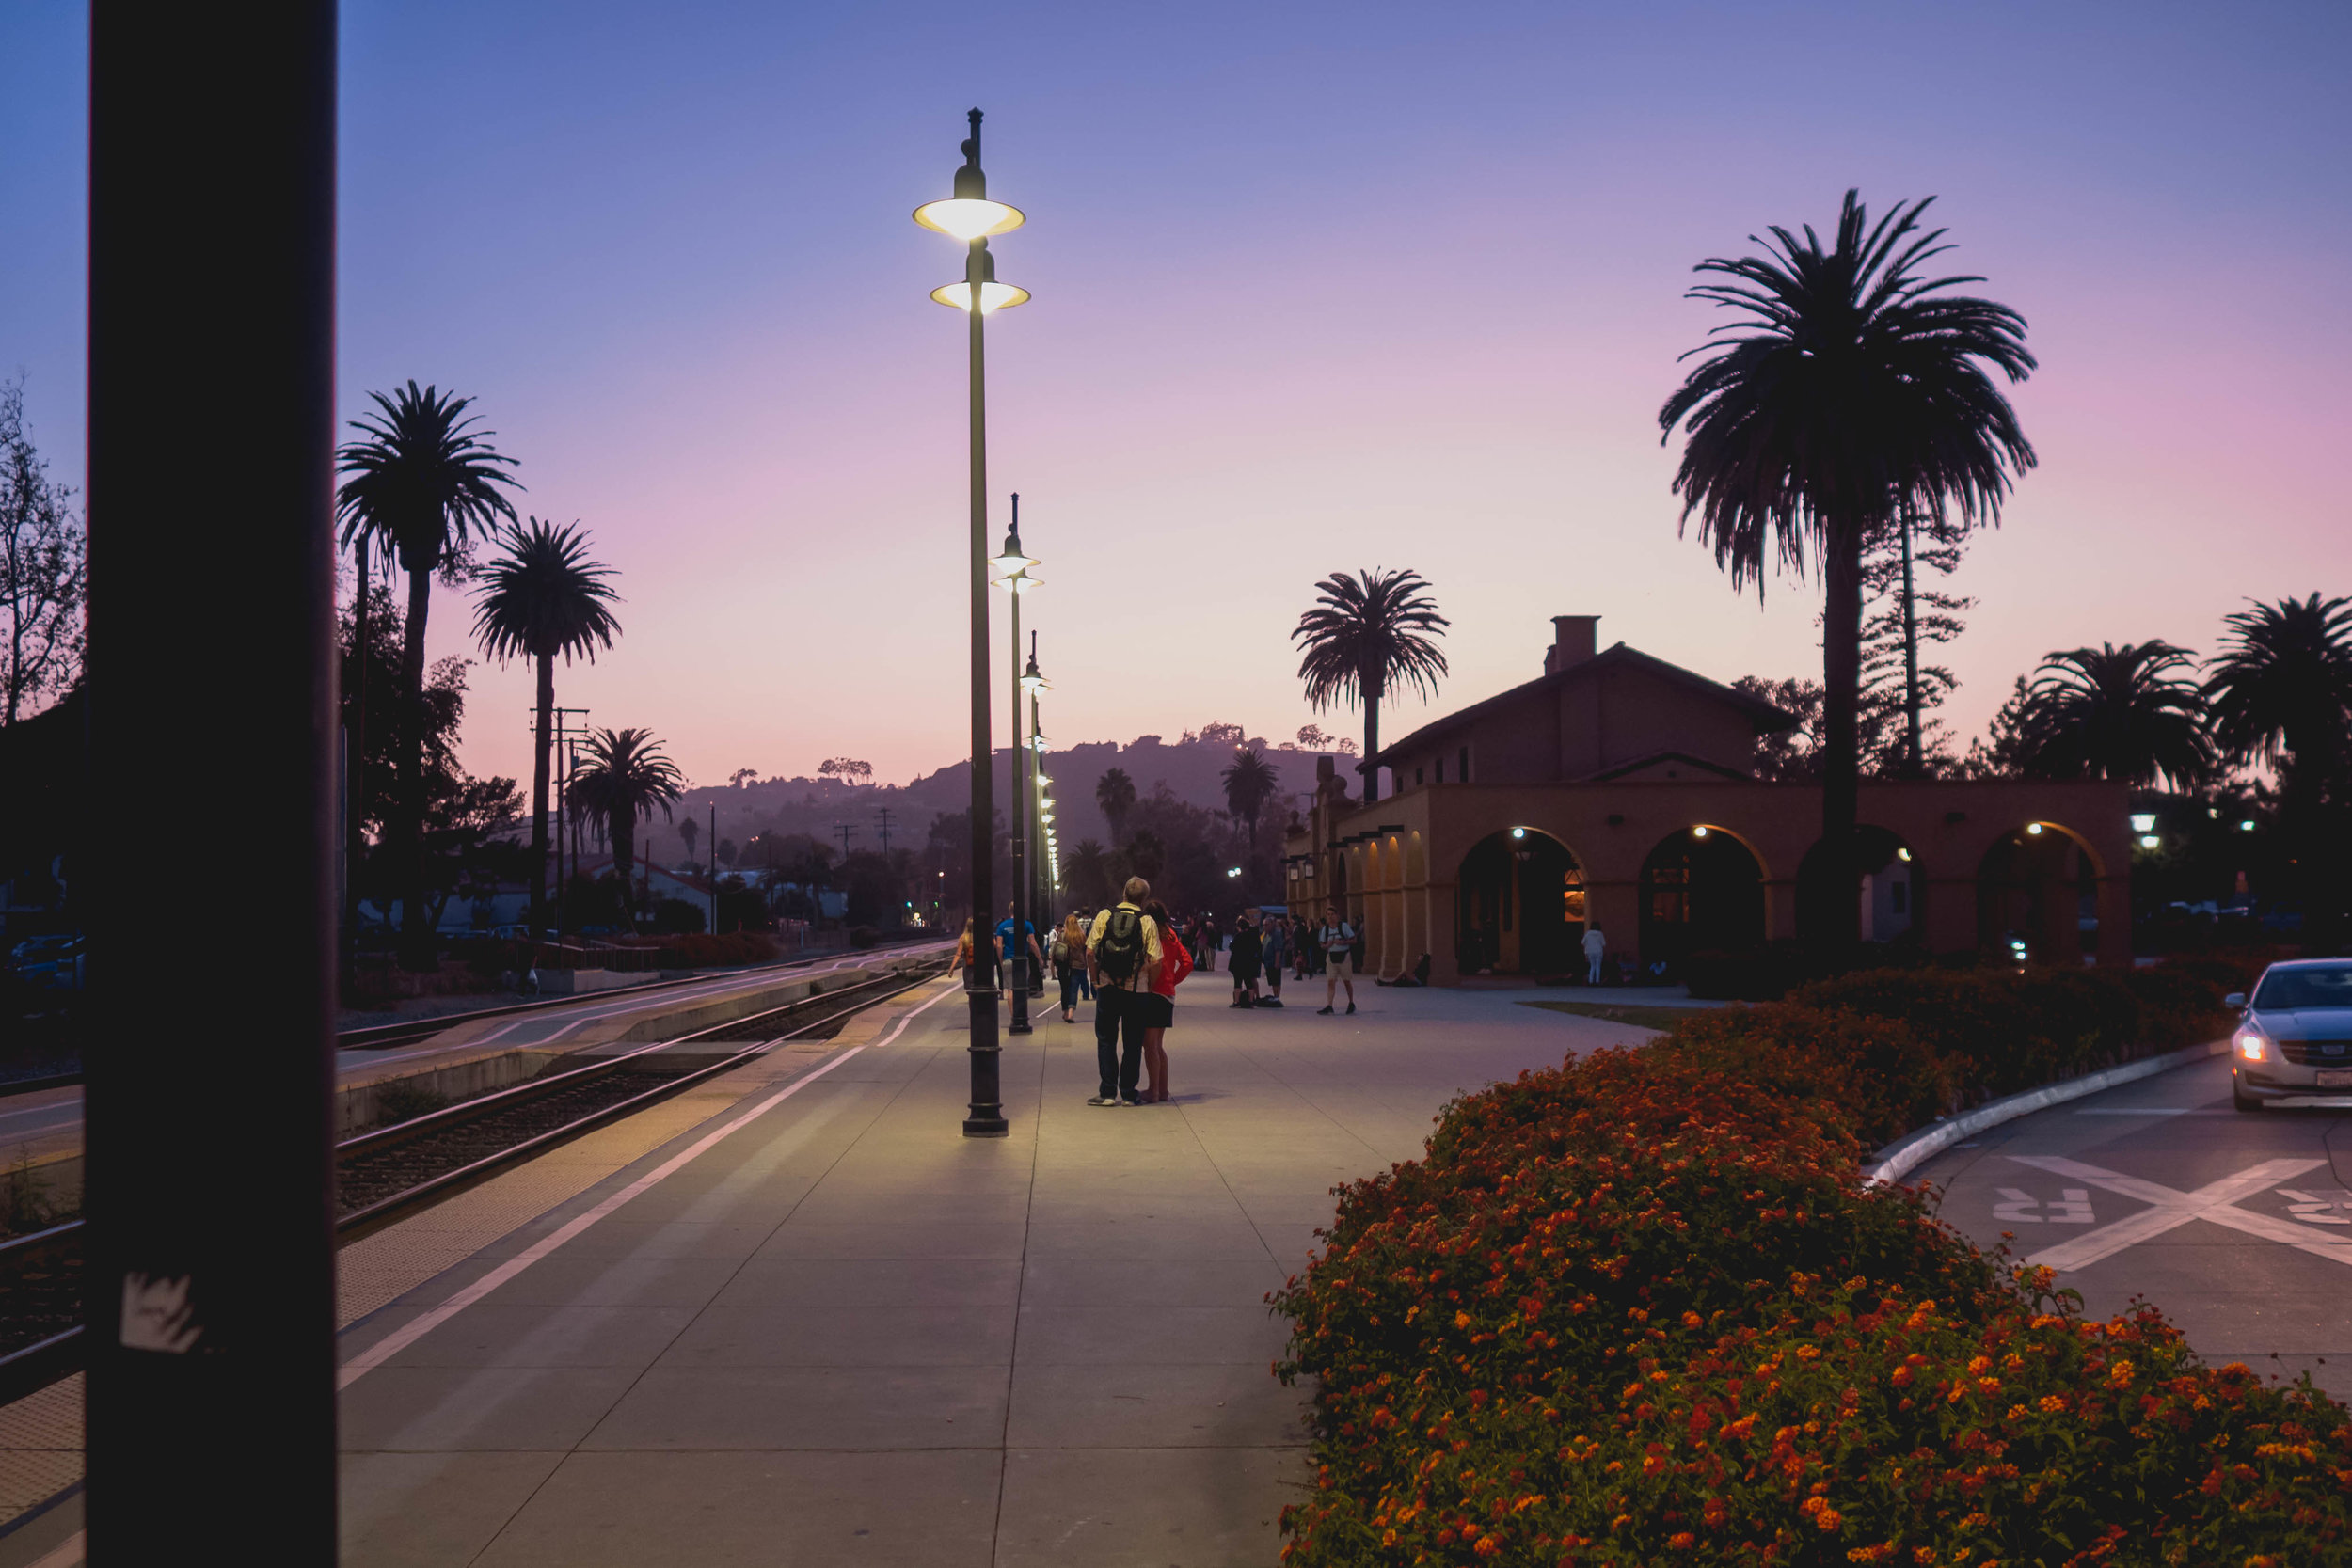 santa barbara amtrak station at sunset.